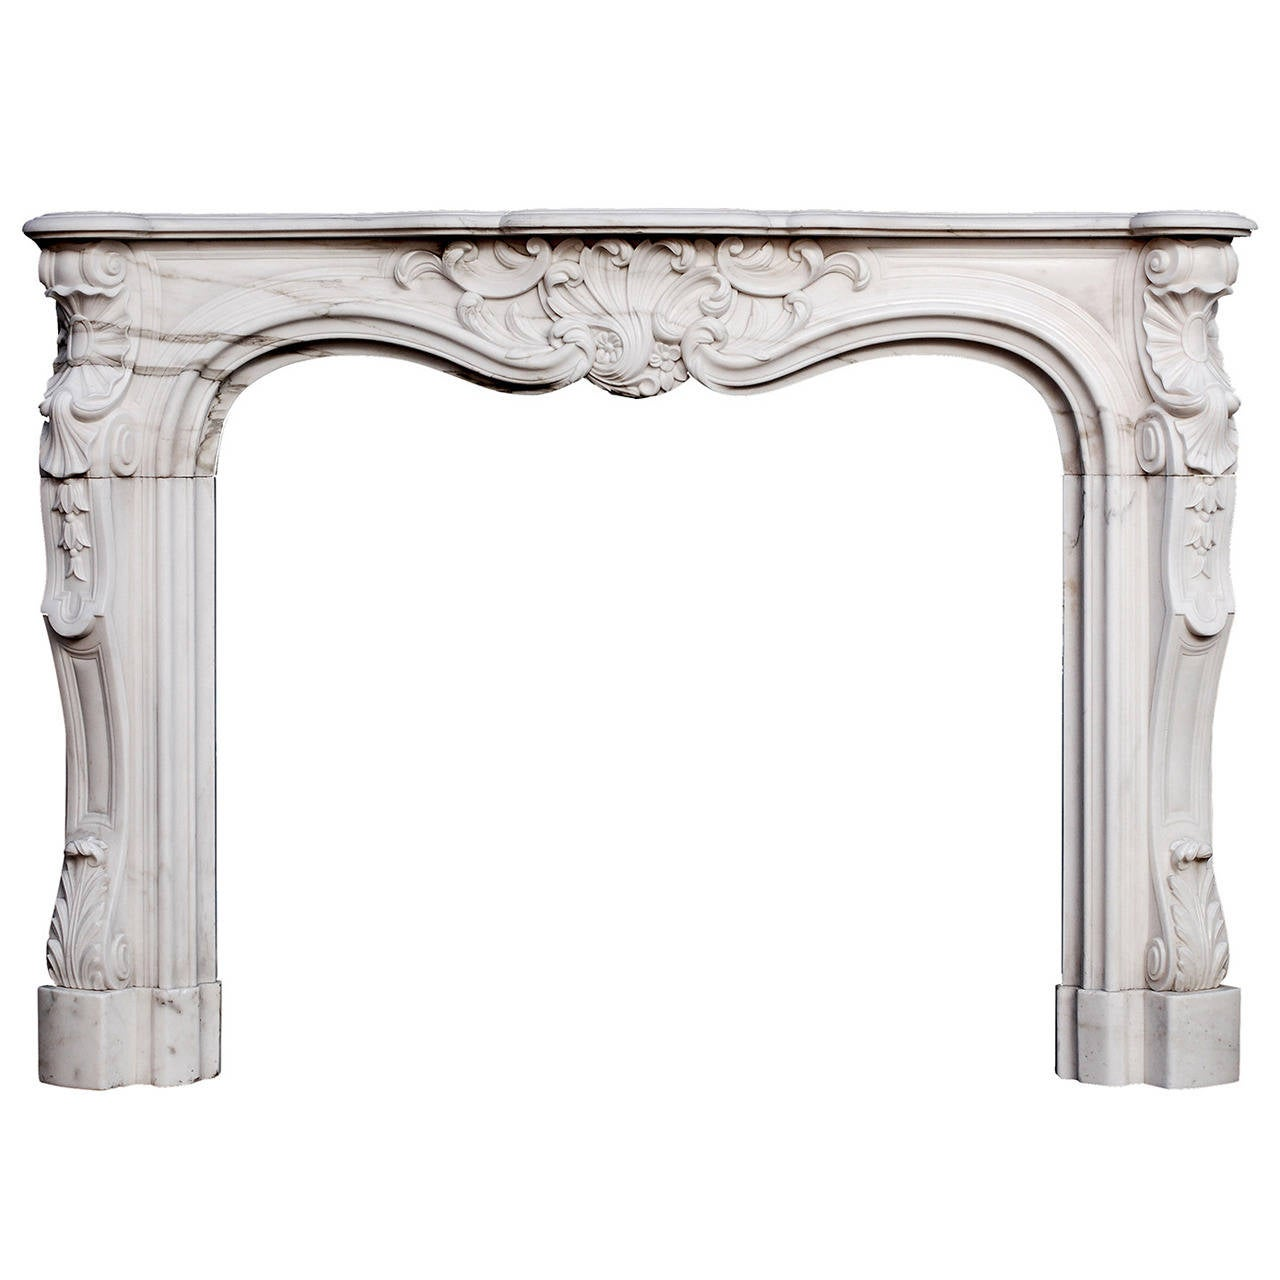 A 19th Century French Louis Xv Style Marble Fireplace Mantle For Sale At 1stdibs